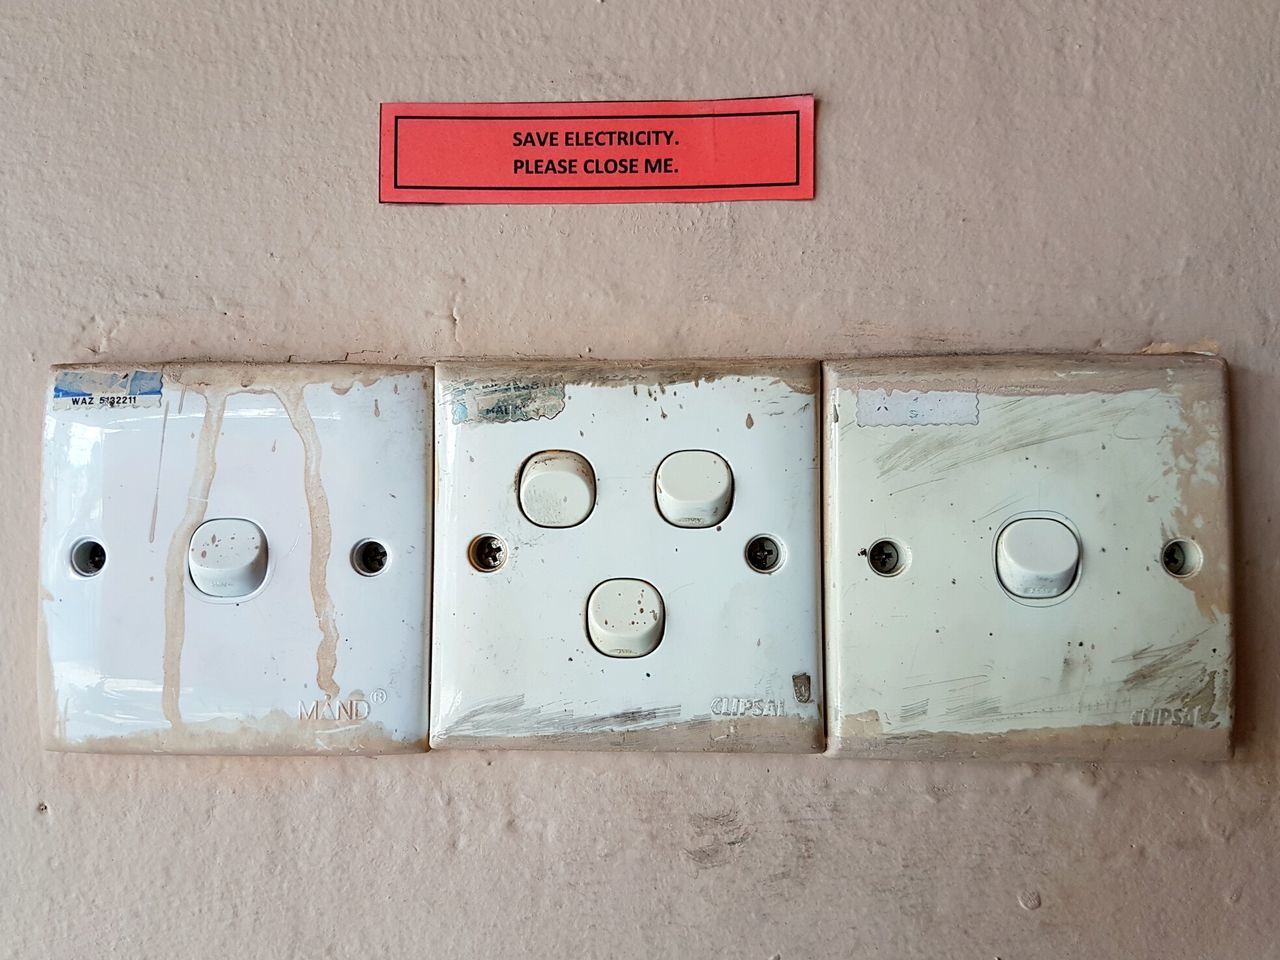 Switch on switch off. Indoors  Close-up No People Text Switches Switched On SwitchOff Malaysia Scenery LocalGuides